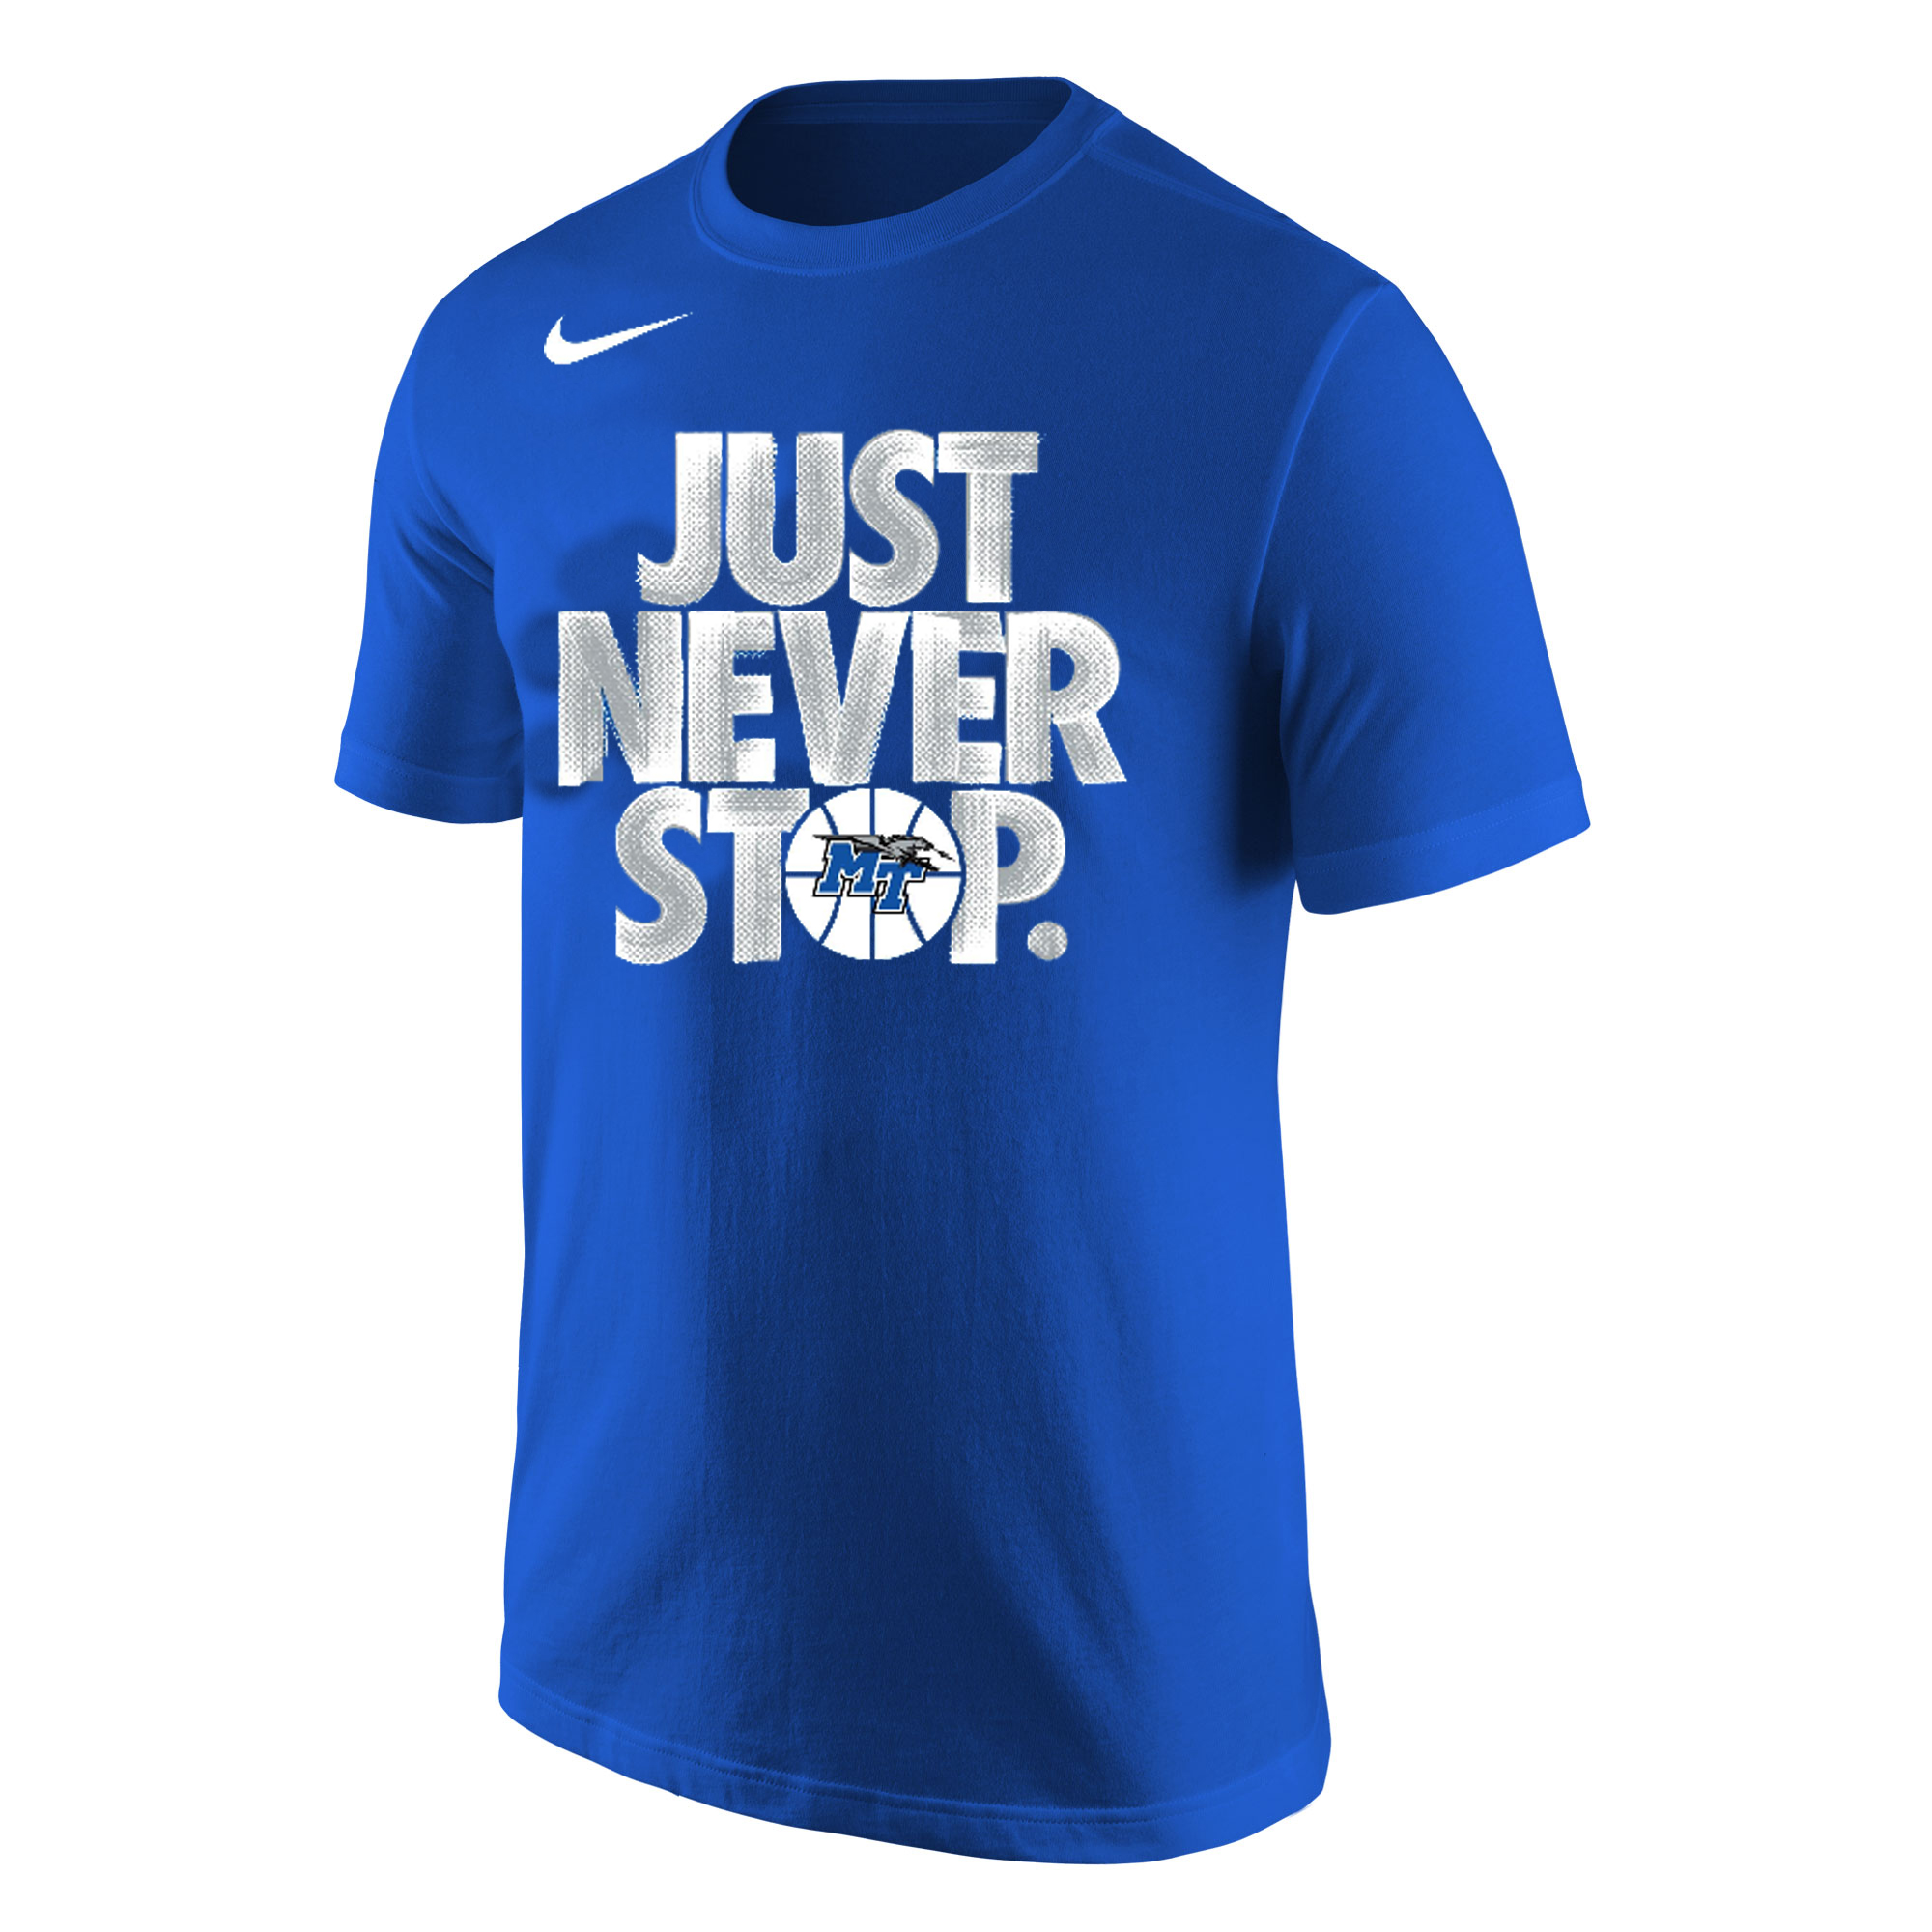 Just Never Stop MT Nike® Shirt